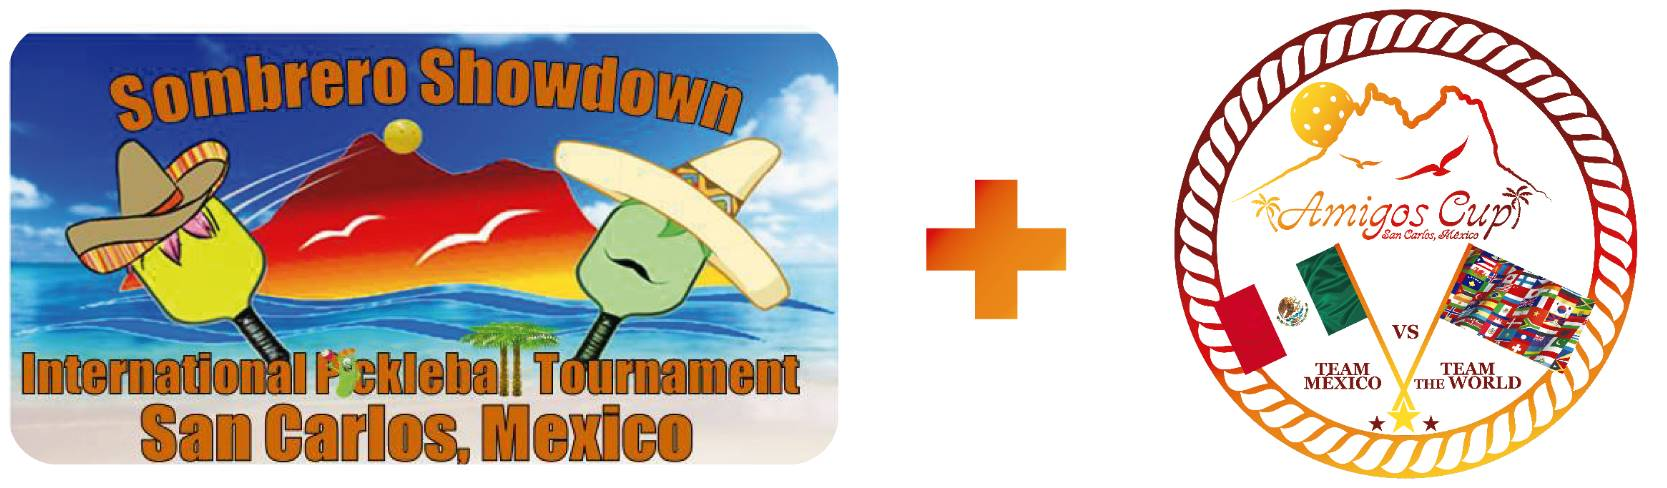 Sombrero Showdown